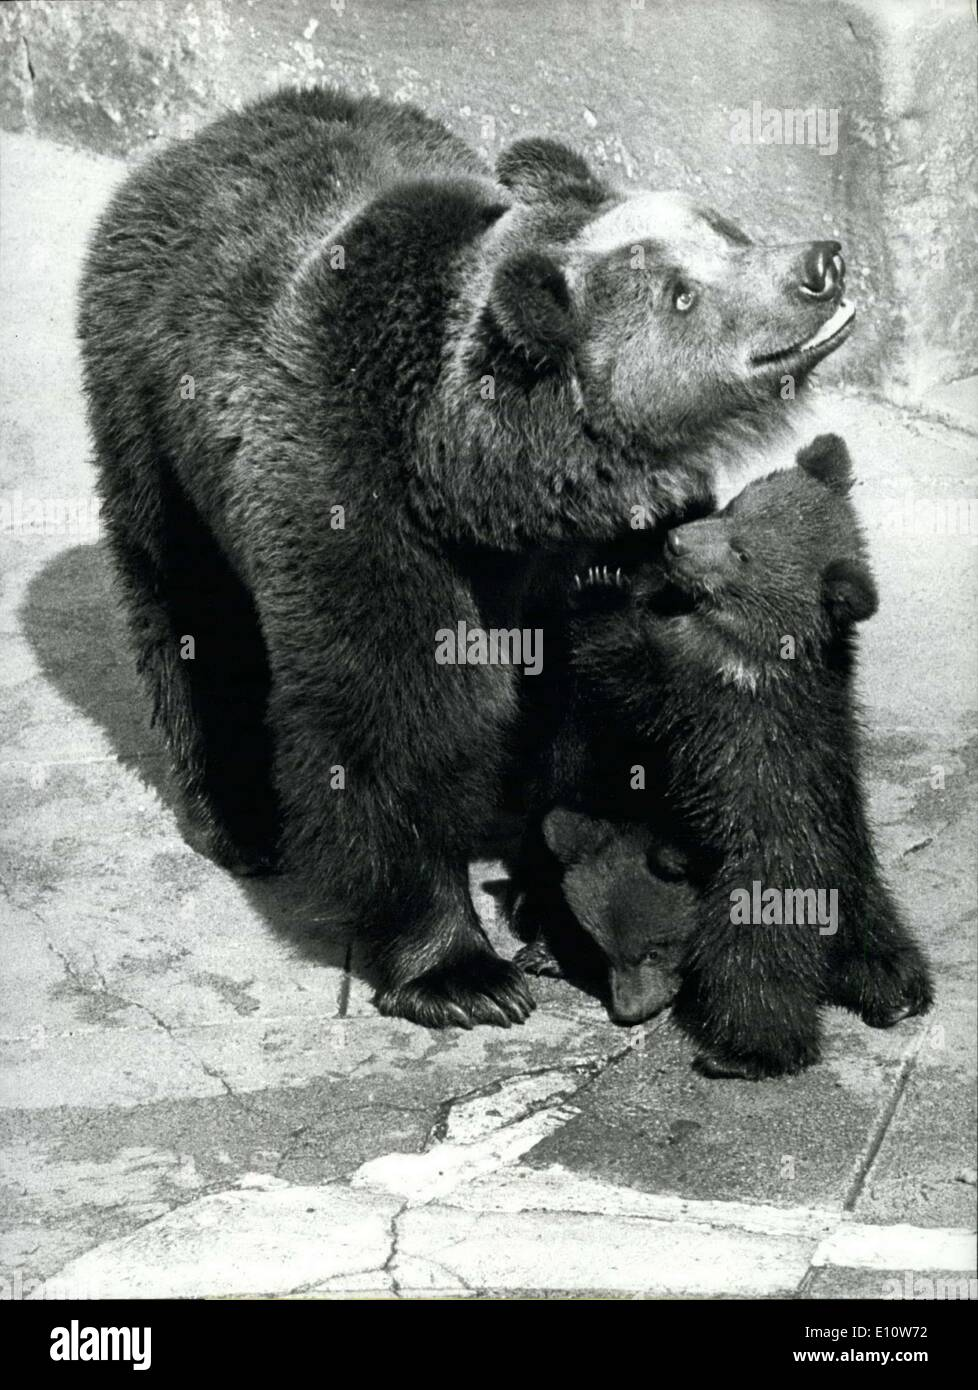 Apr. 08, 1974 - Little Brown Bears On Their First Open Air Performances: The Bear is the Heraldic animal of Swiss capital Berne. And Berne also has a well known bear- ditch. In this ''Beren '' garden now four youngsters made made their first appearance in public: mother Ursula with her two kids and mother Marina with the other two chaming chaps. - Stock Image